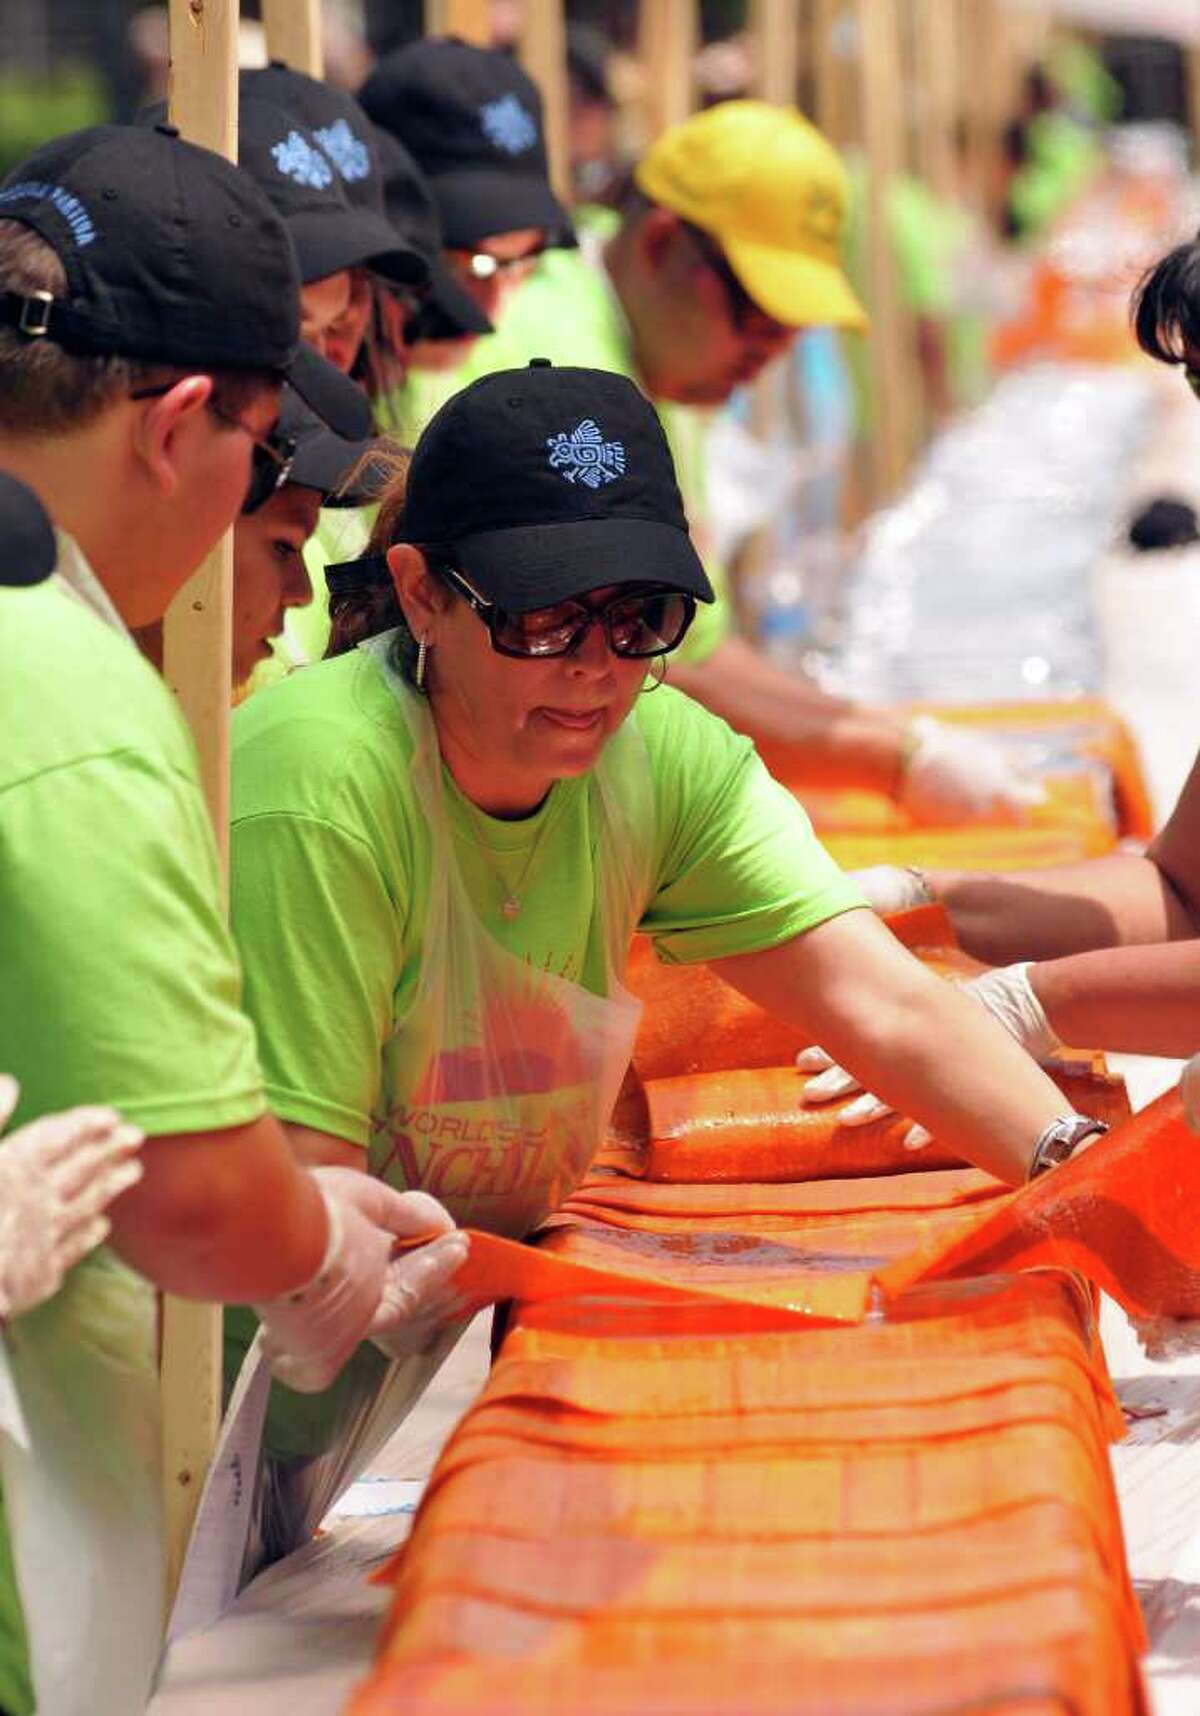 Susie Mitchel layers tortillas during the construction of a 300-foot-long enchilada in Milam Park on April 9, 2011. The project was a collaboration of 20 San Antonio restaurants and the Rey Feo Consejo Foundation.